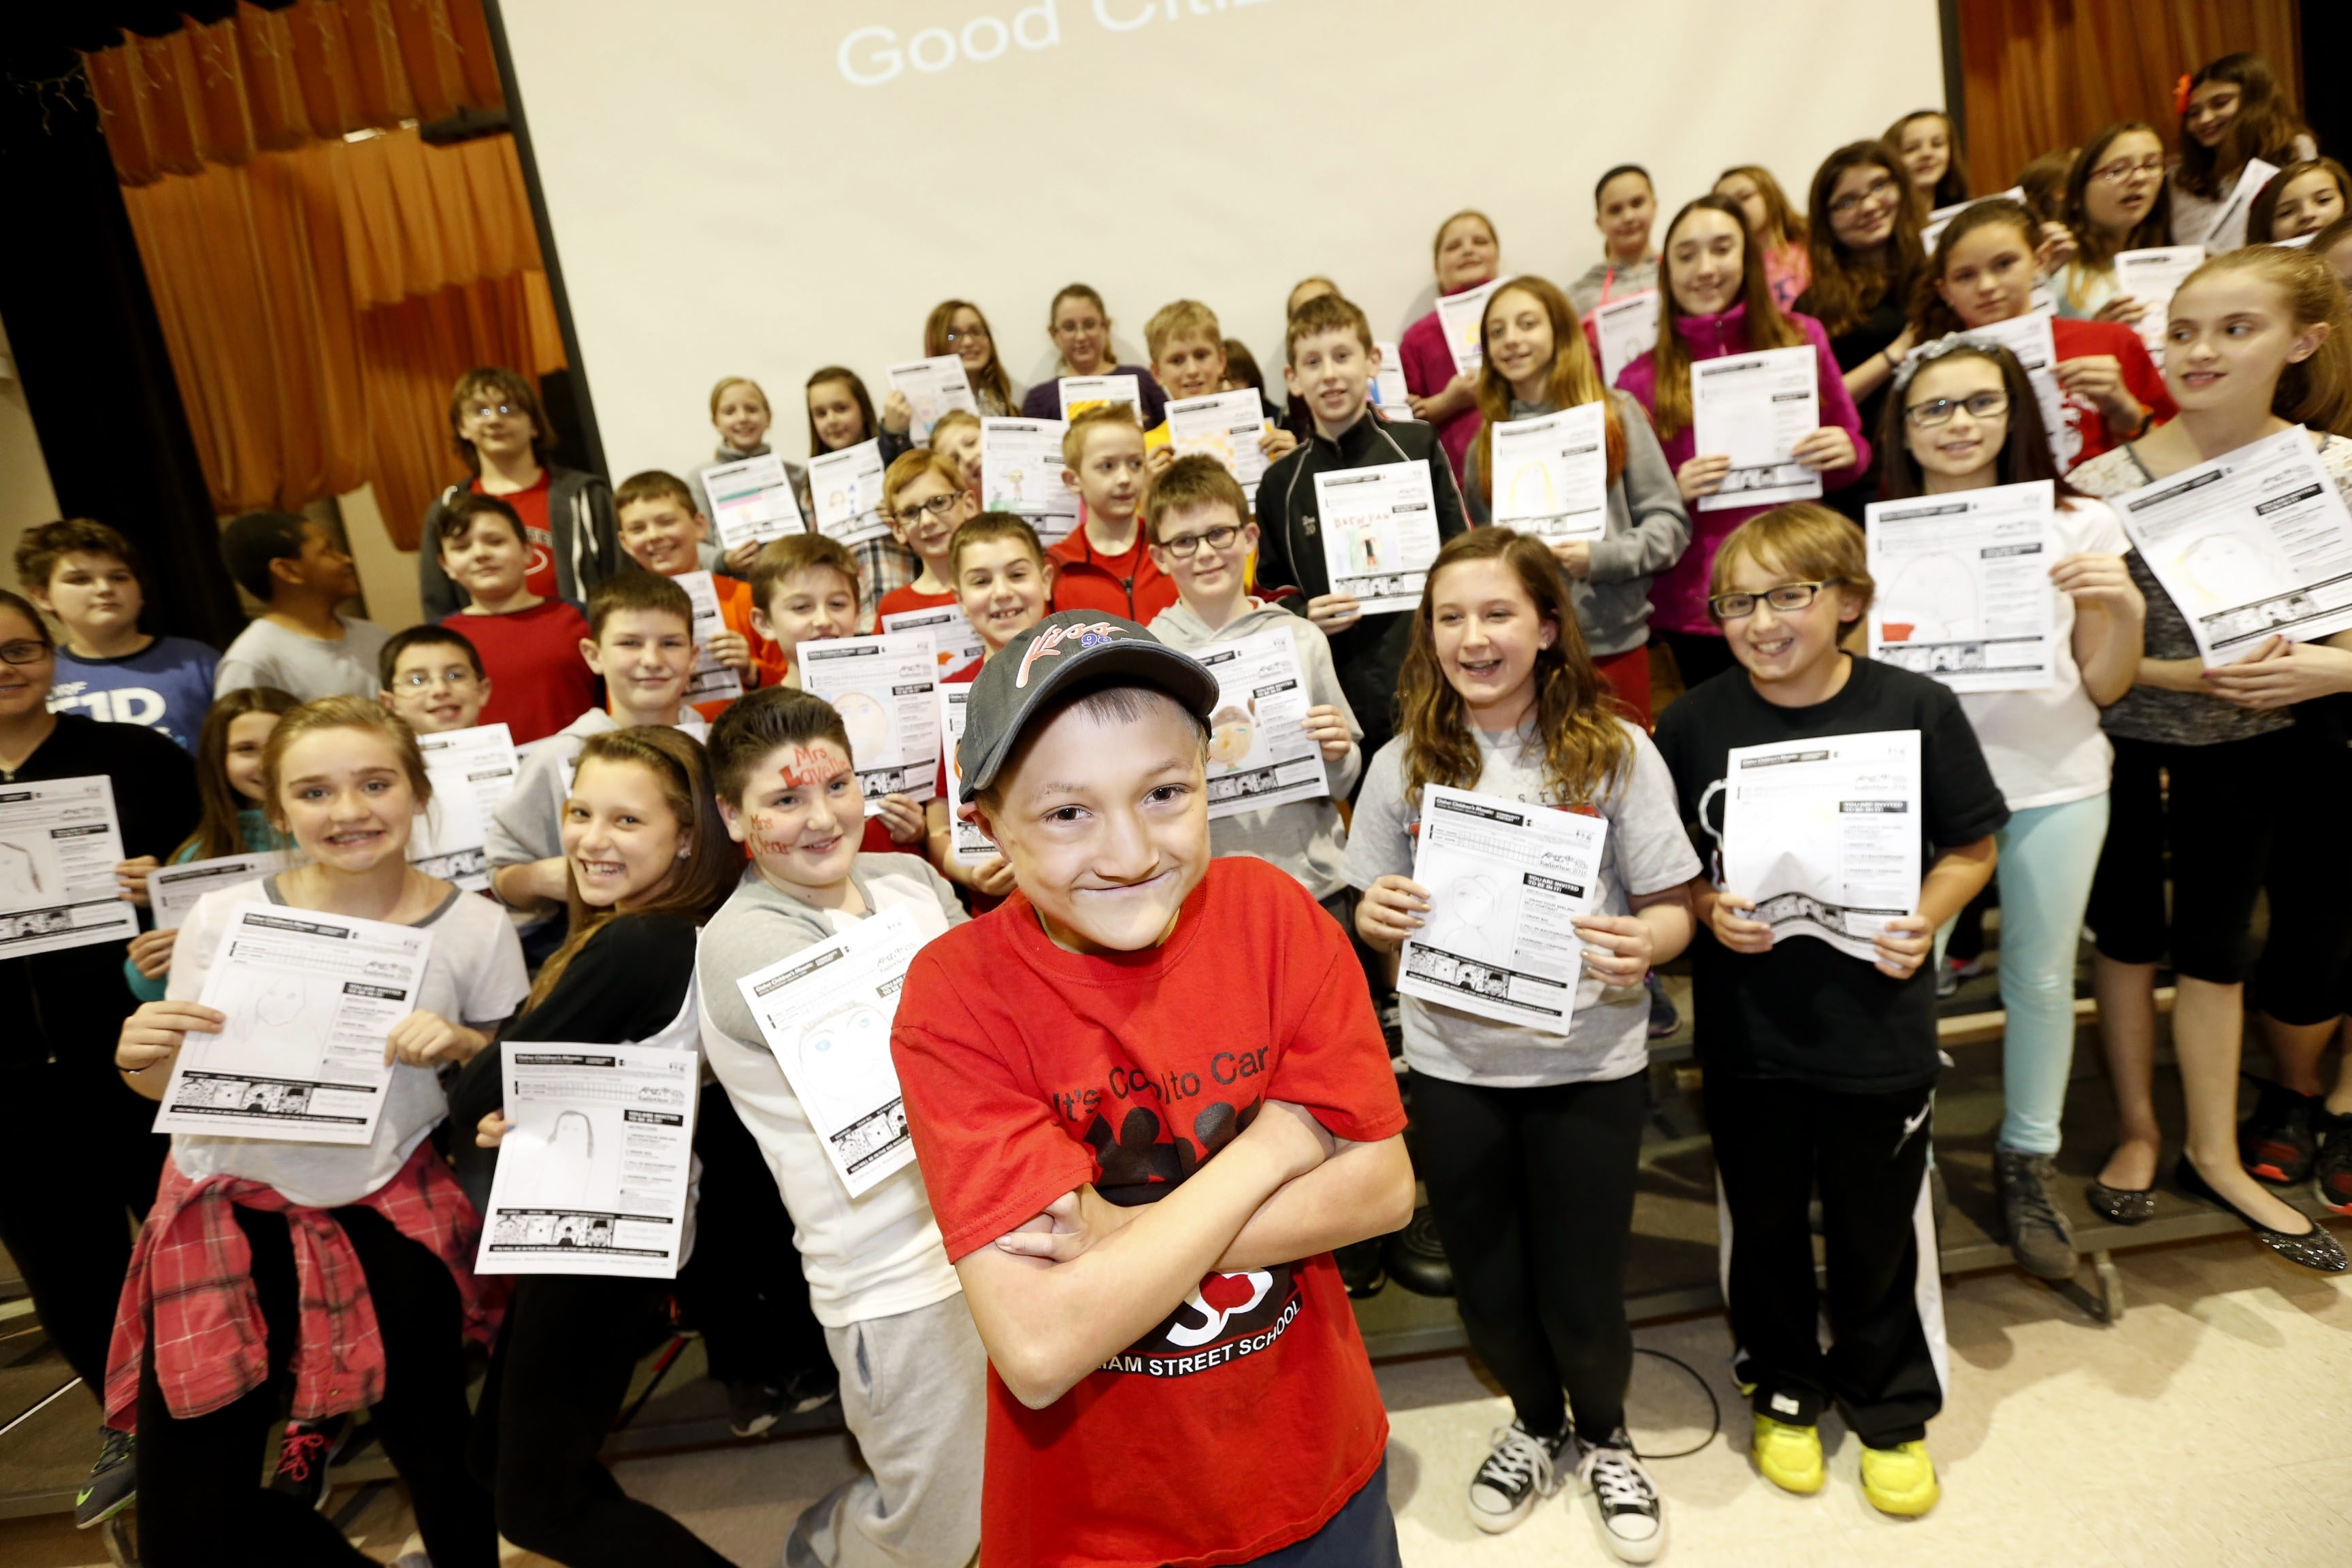 Ryan Patota, 10, front and center, and classmates in the Good Citizens Club at William Street School in Lancaster display self-portraits to be included in a mosaic at the new John R. Oishei Children's Hospital.